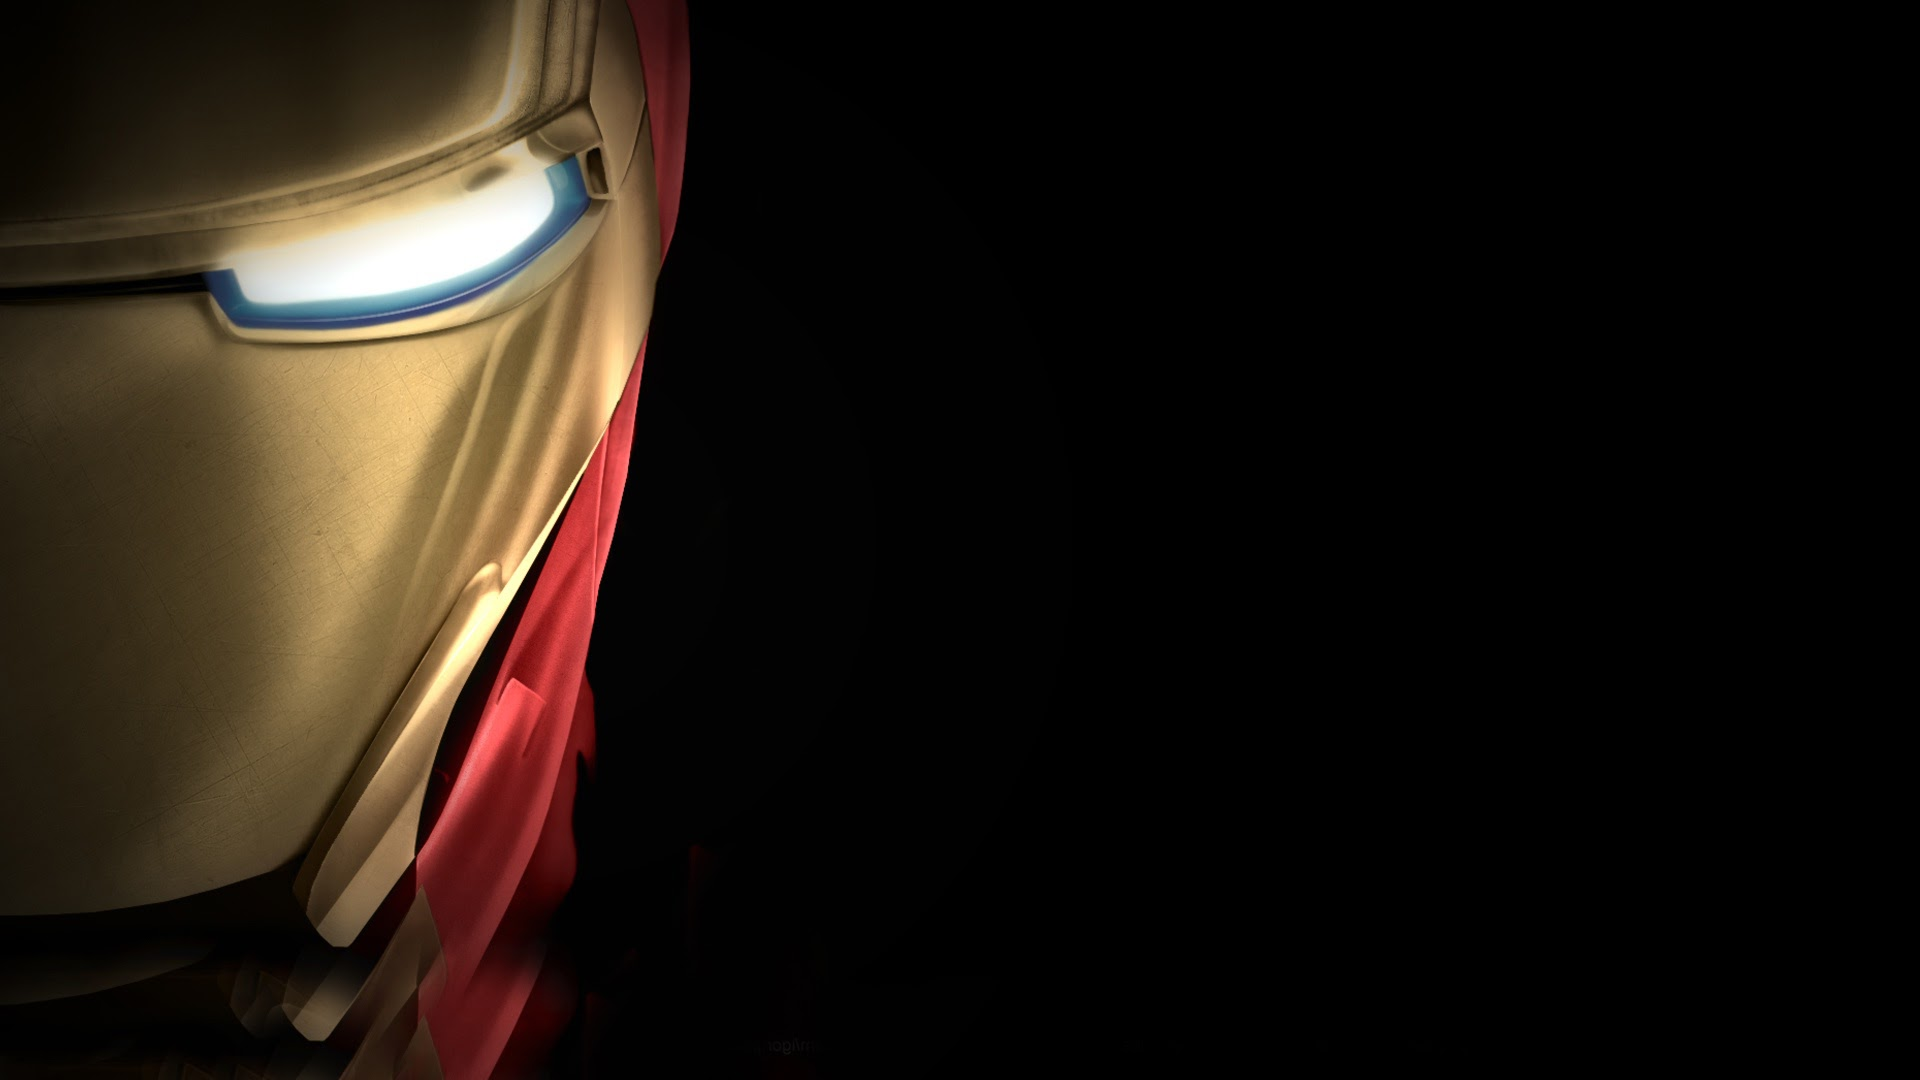 Iron-Man-Background-Wallpapers